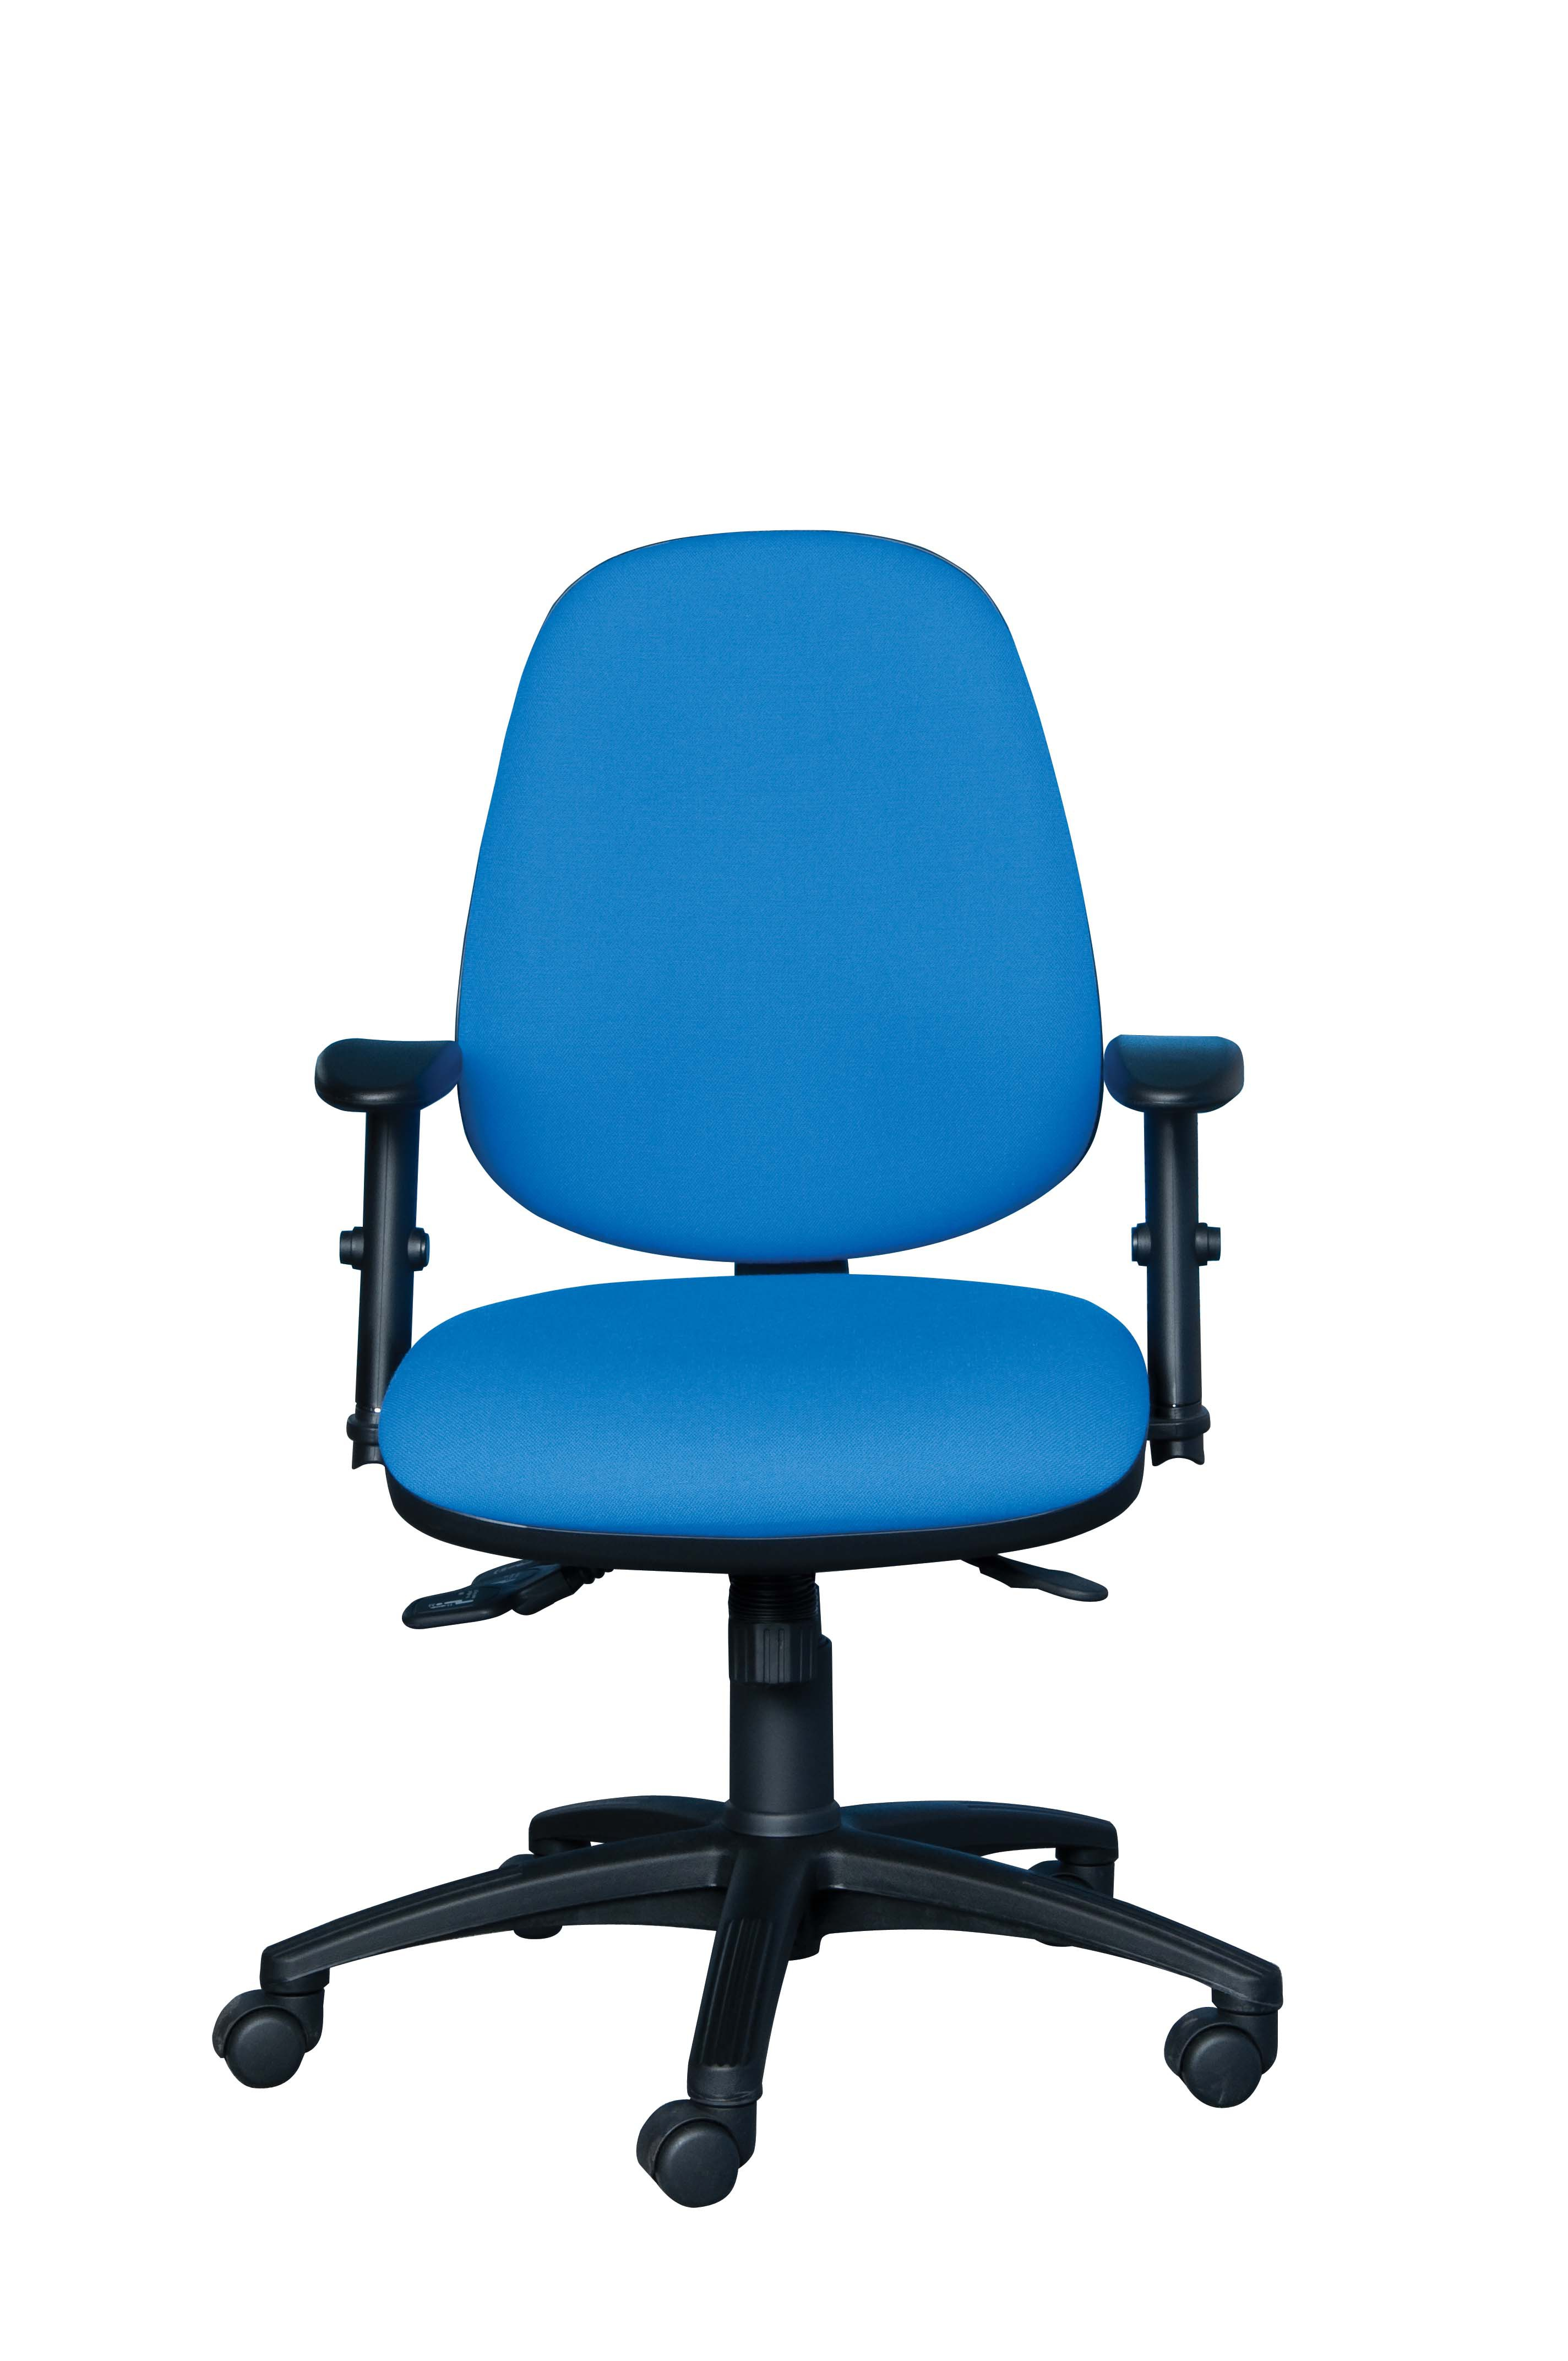 ACTIV HIGH BACK POSTURE CHAIR HEAVY DUTY 3 LEVER MECHANISM FIXED LOOP ARMS SEAT SLIDE (FABRIC COLOUR)